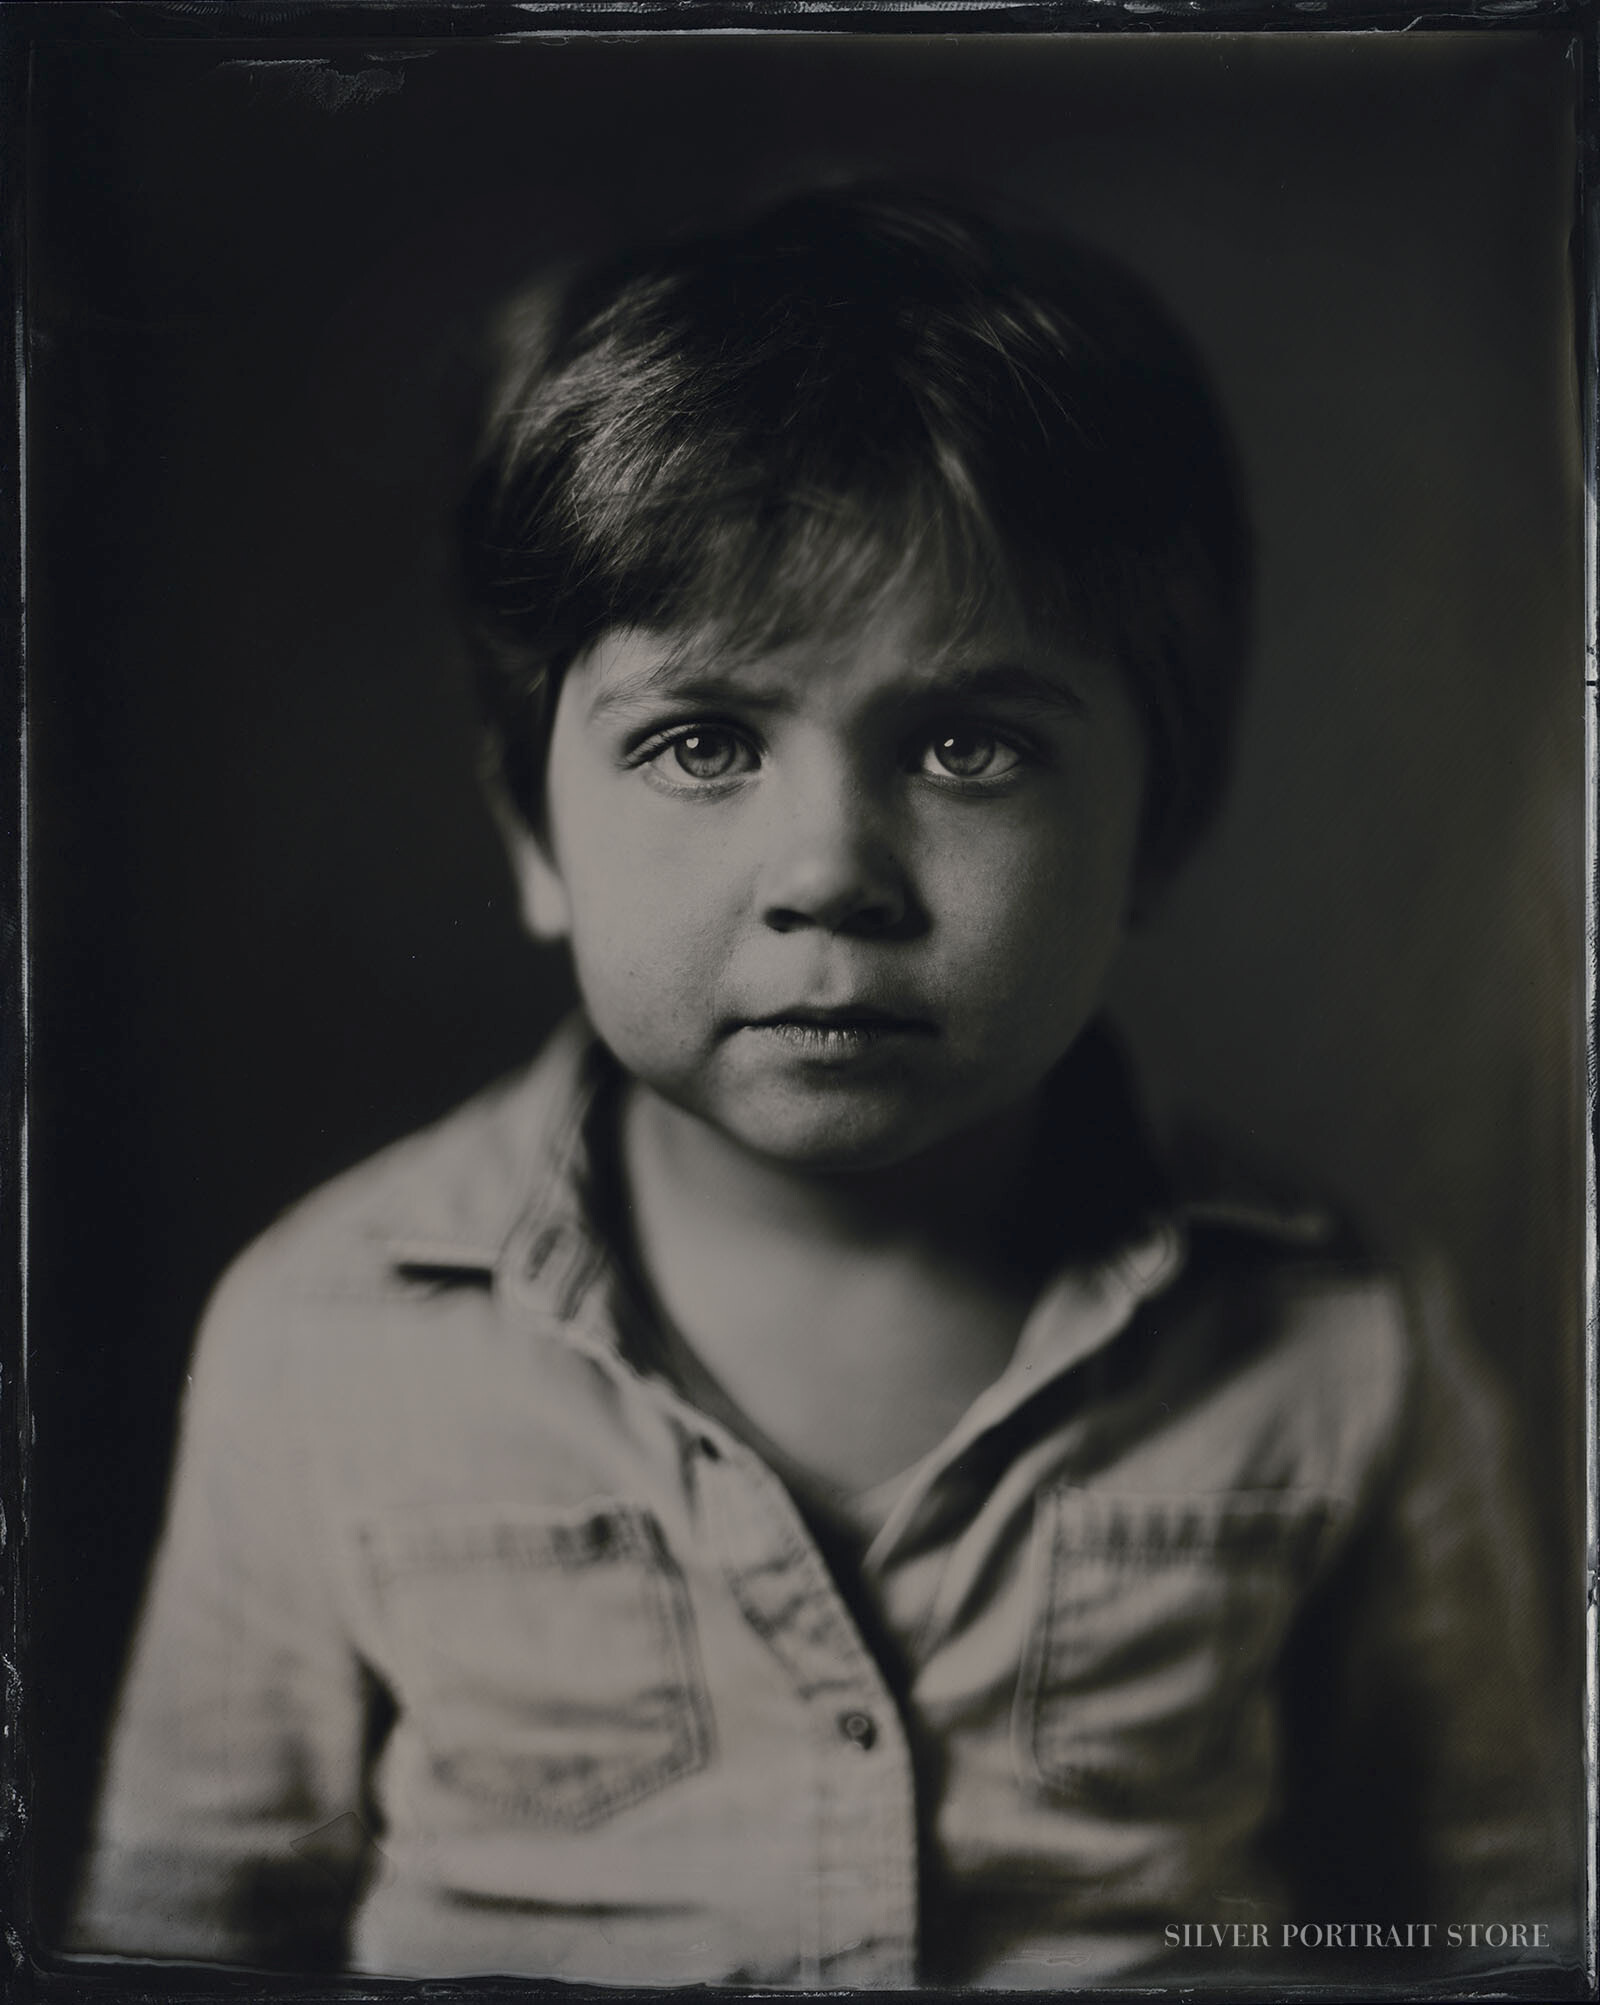 Mees-Silver Portrait Store-Scan from Wet plate collodion-Tintype 20 x 25 cm.